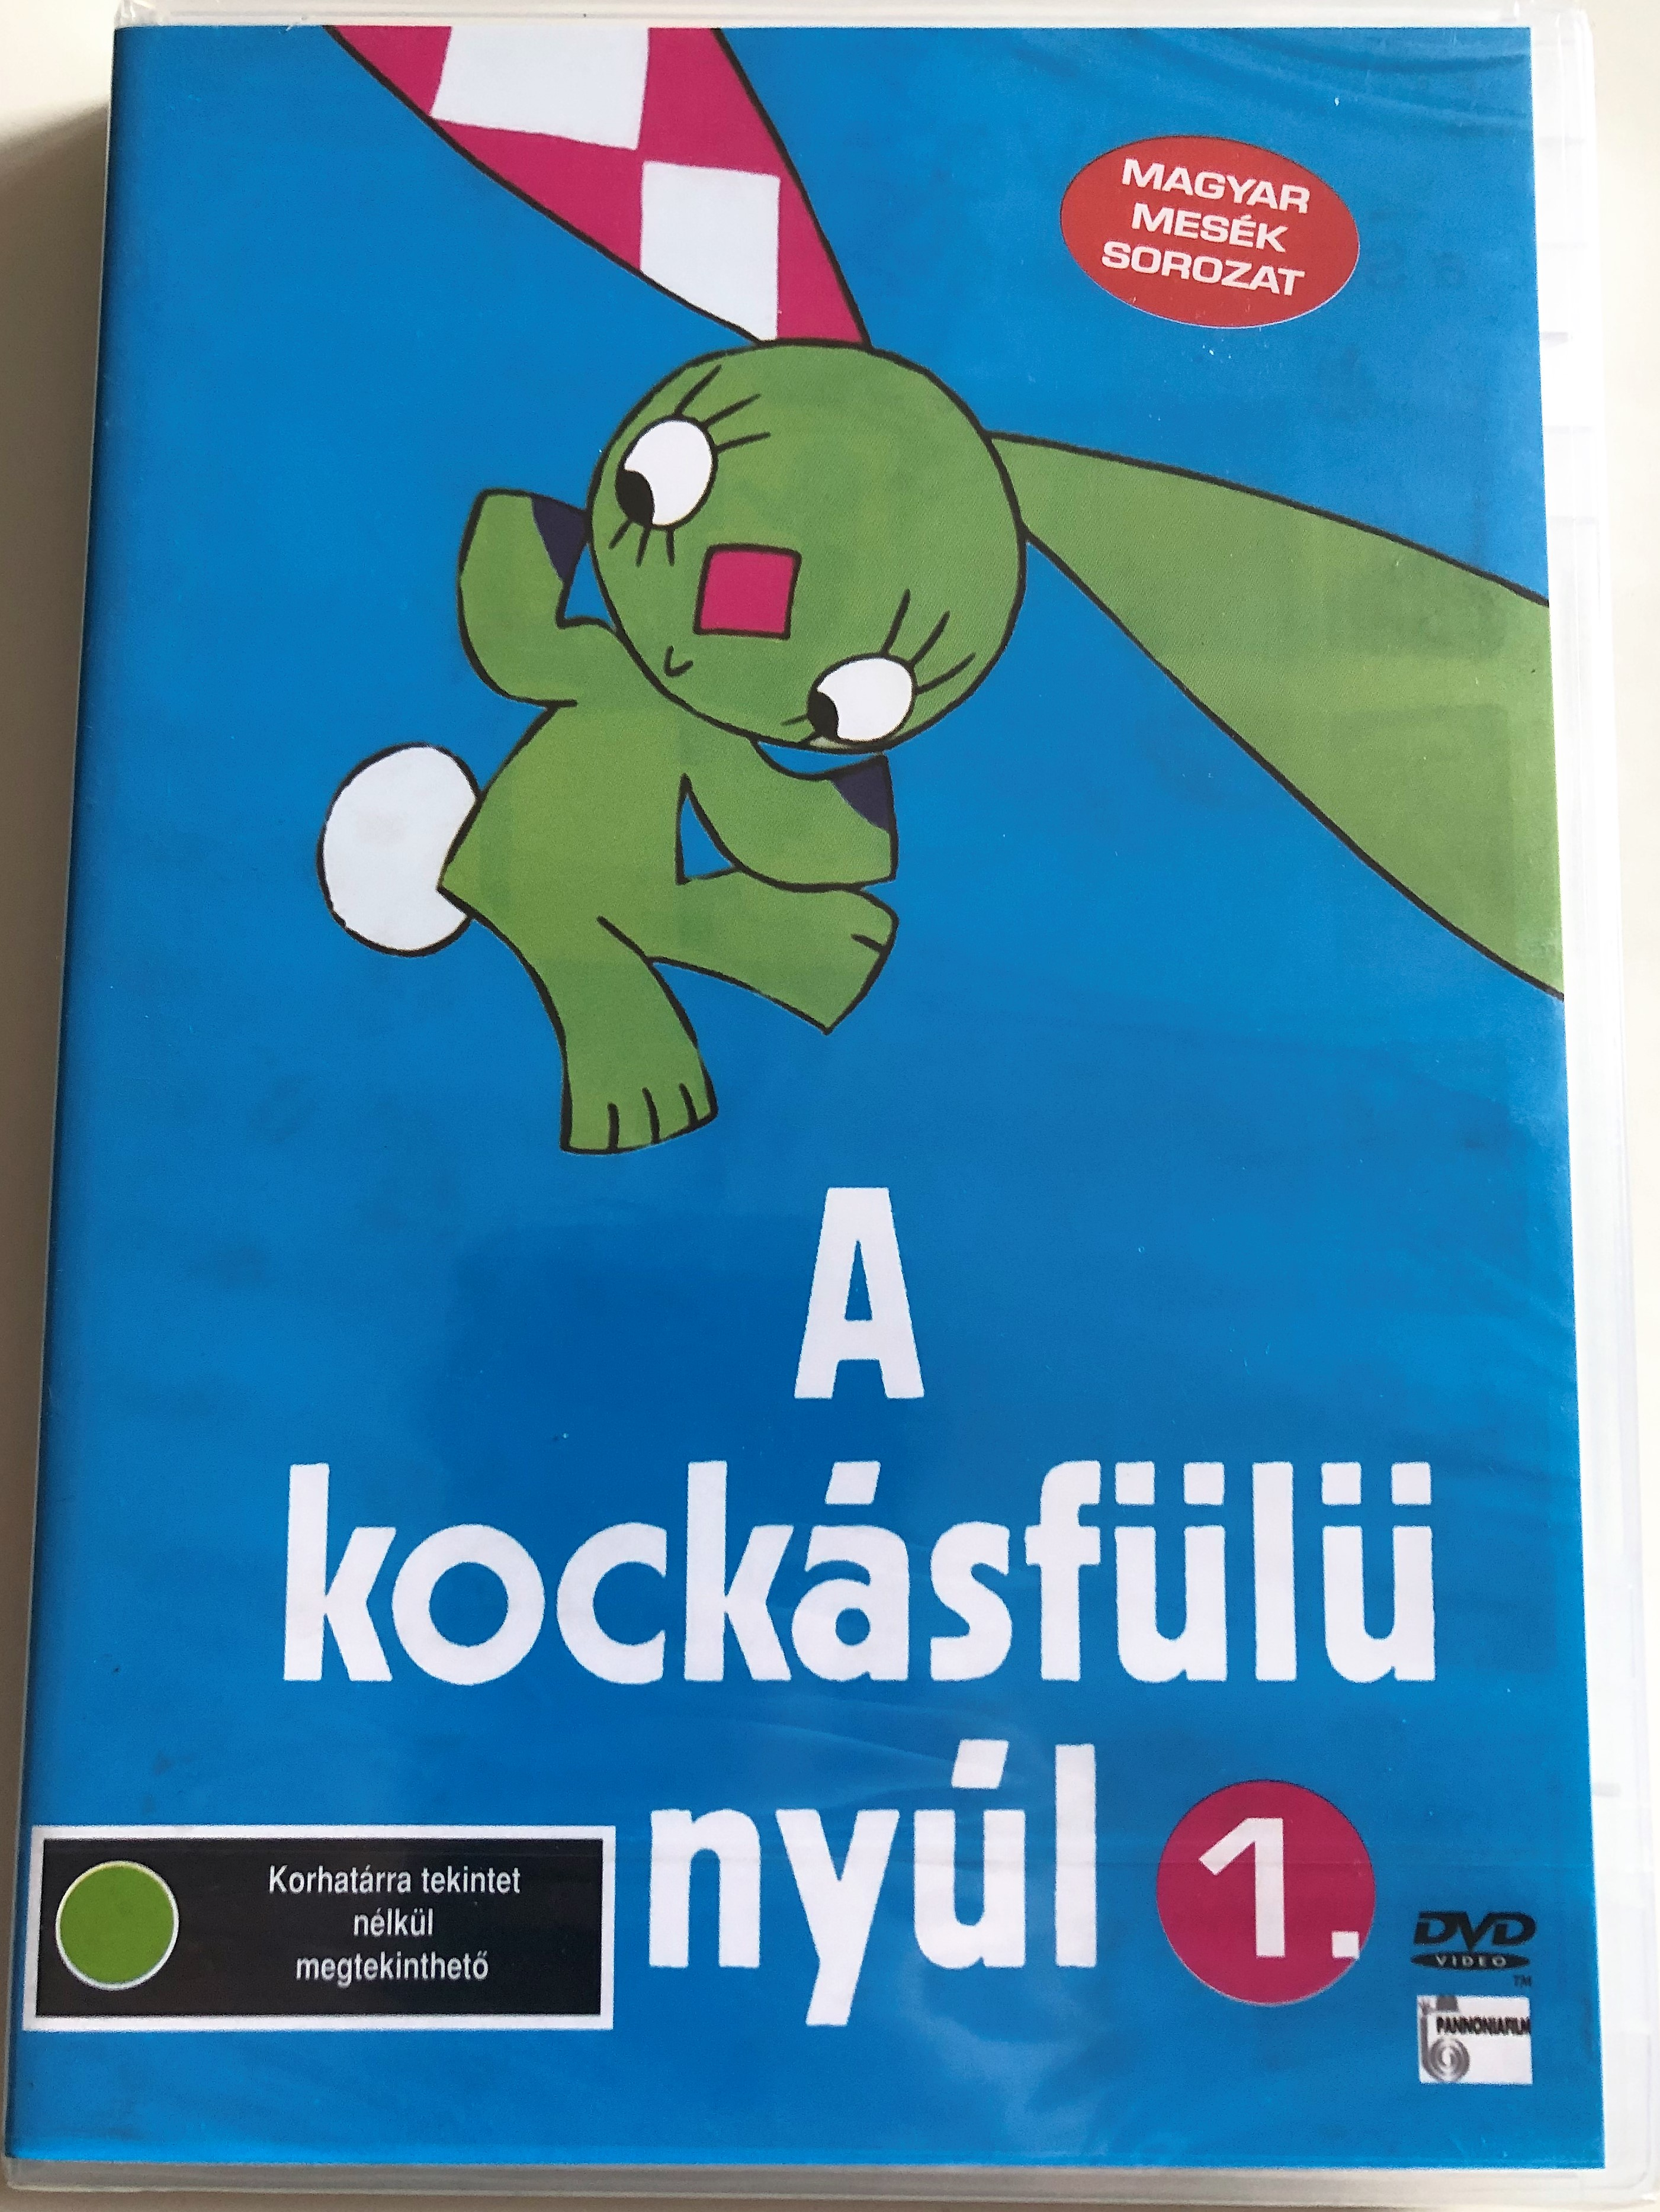 a-kock-sf-l-ny-l-1.-dvd-1978-the-rabbit-with-checkered-ears-1.-directed-by-richly-zsolt-hungarian-classic-cartoon-1-.jpg